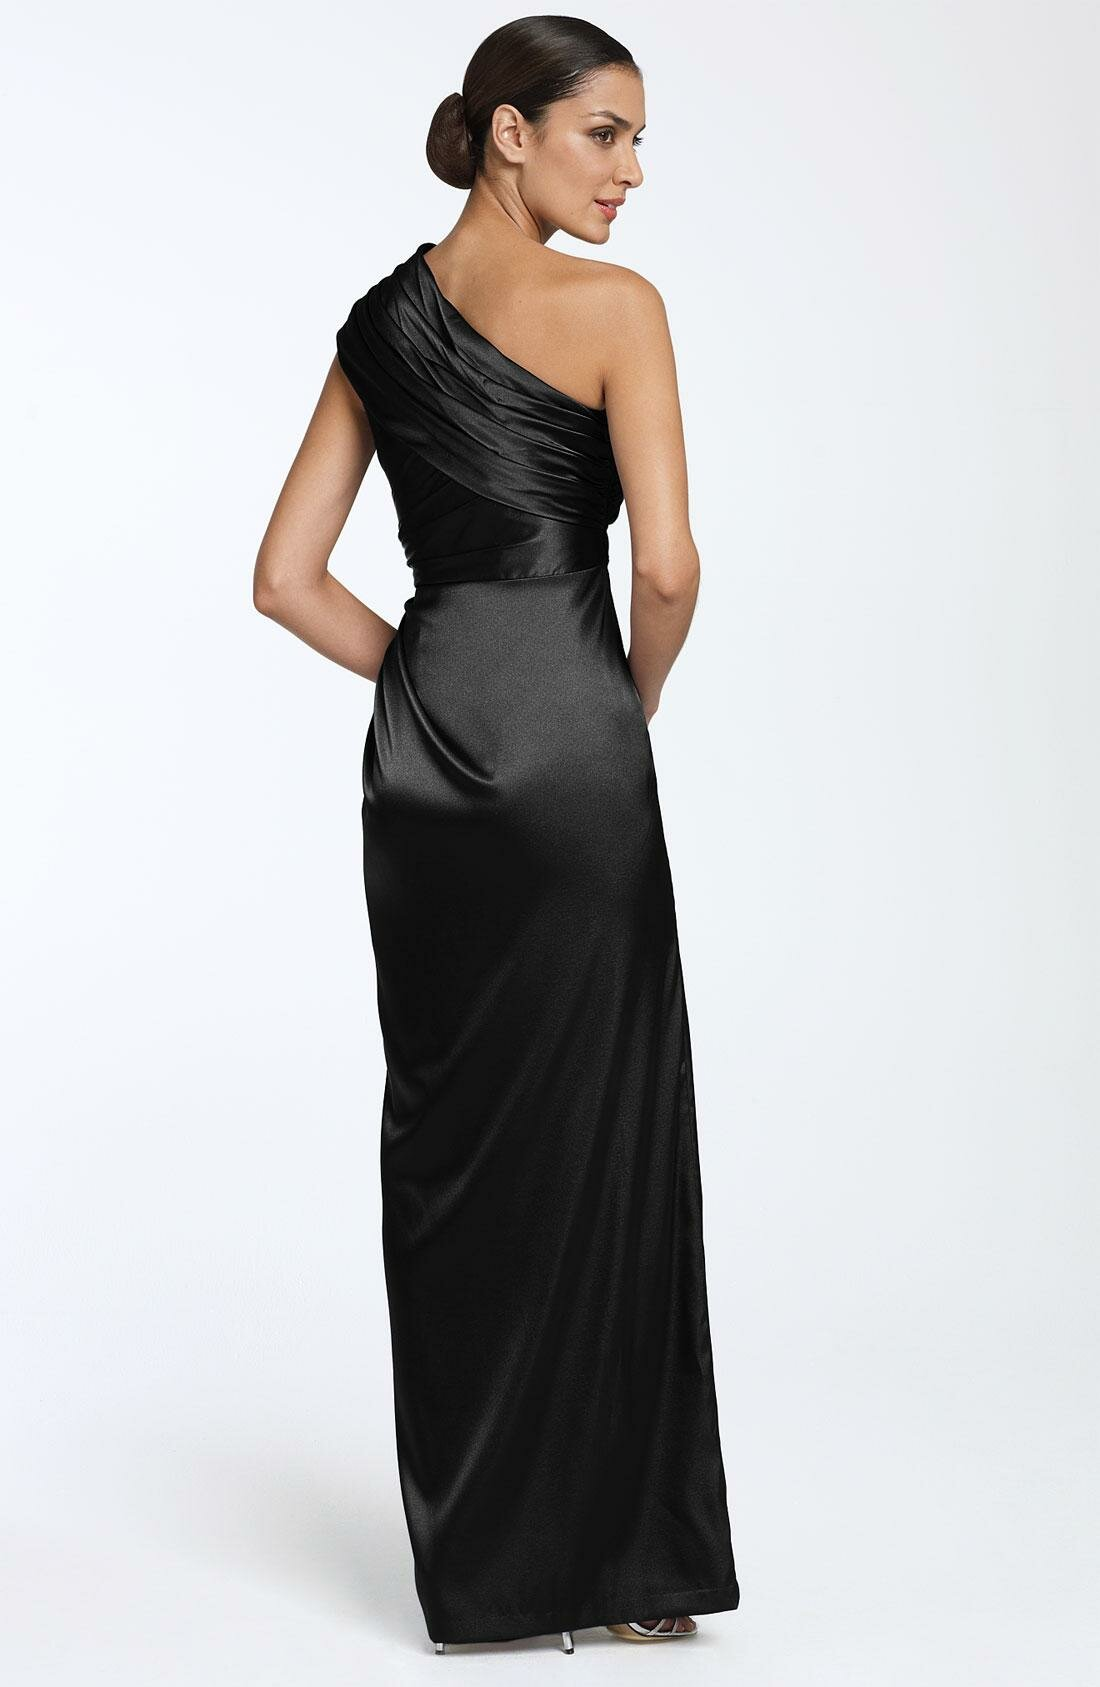 Long evening dresses for wedding Photo - 9